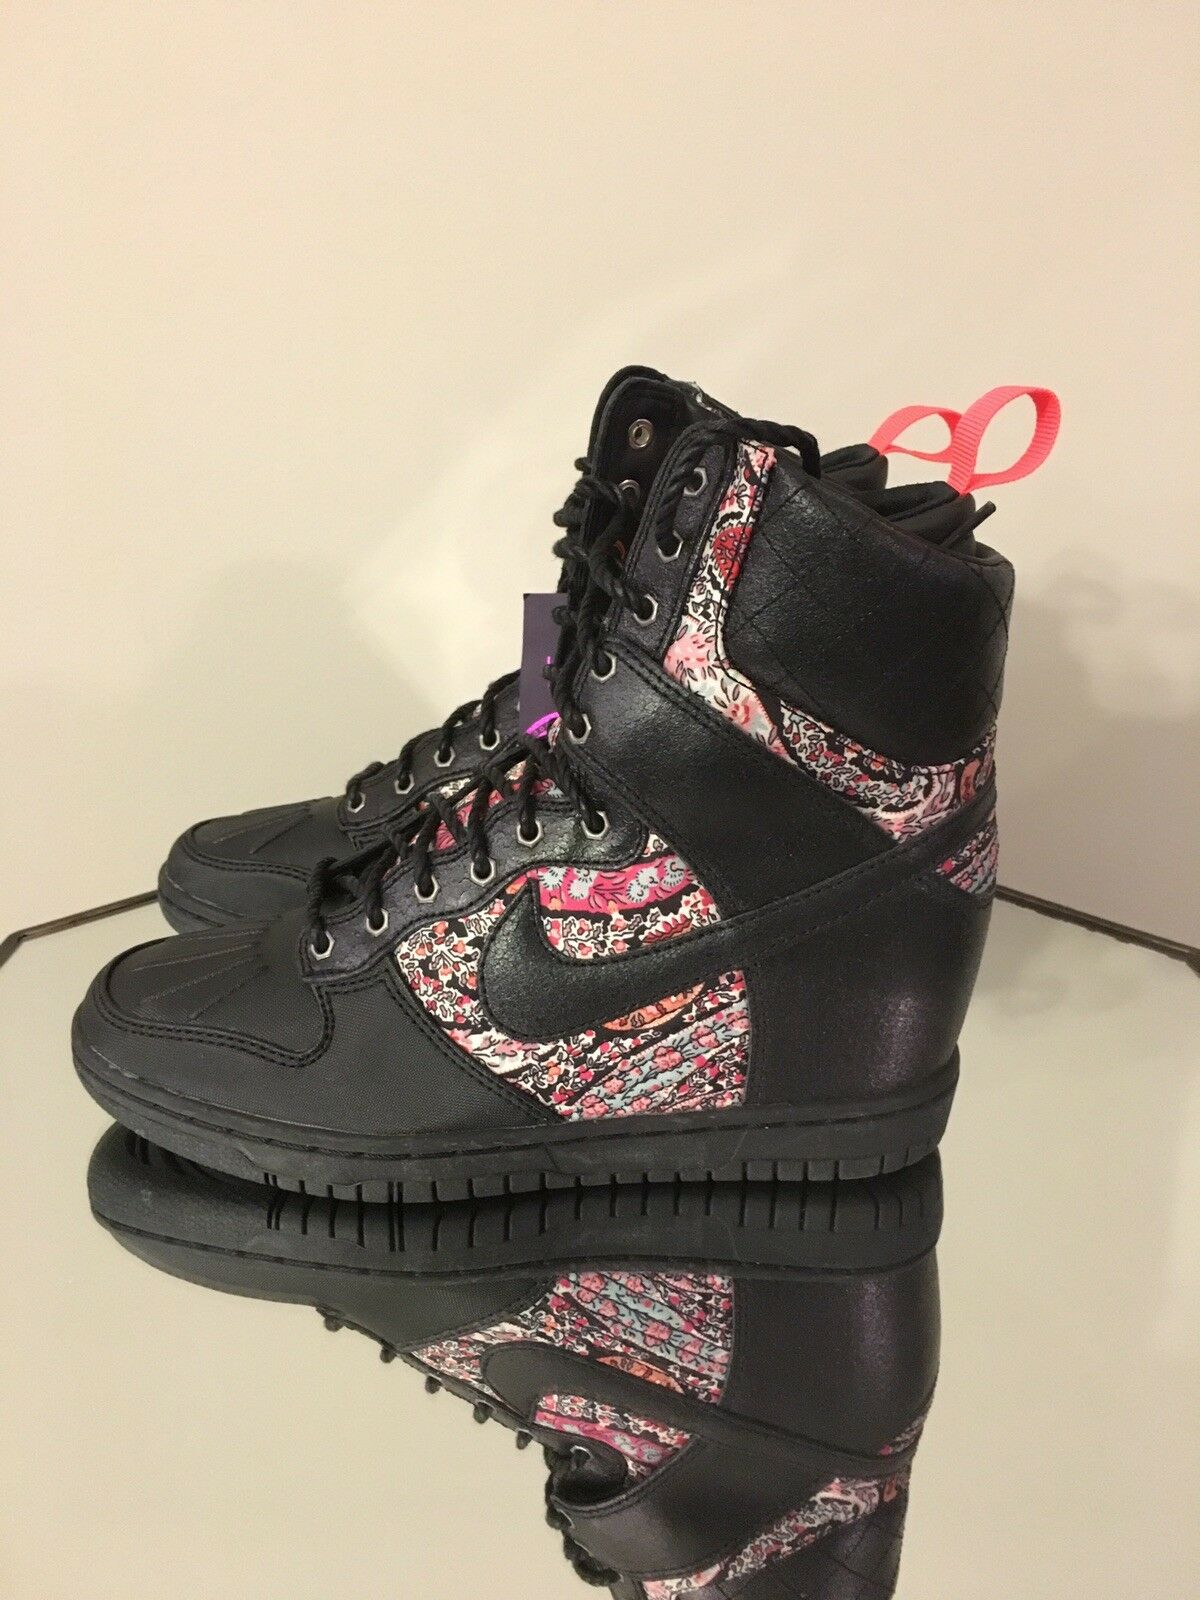 NIKE DUNK SKY HI SNEAKERBOOT LIB QS LIBERTY LONDON SIZE WOMEN'S 7.5 [632180-006]